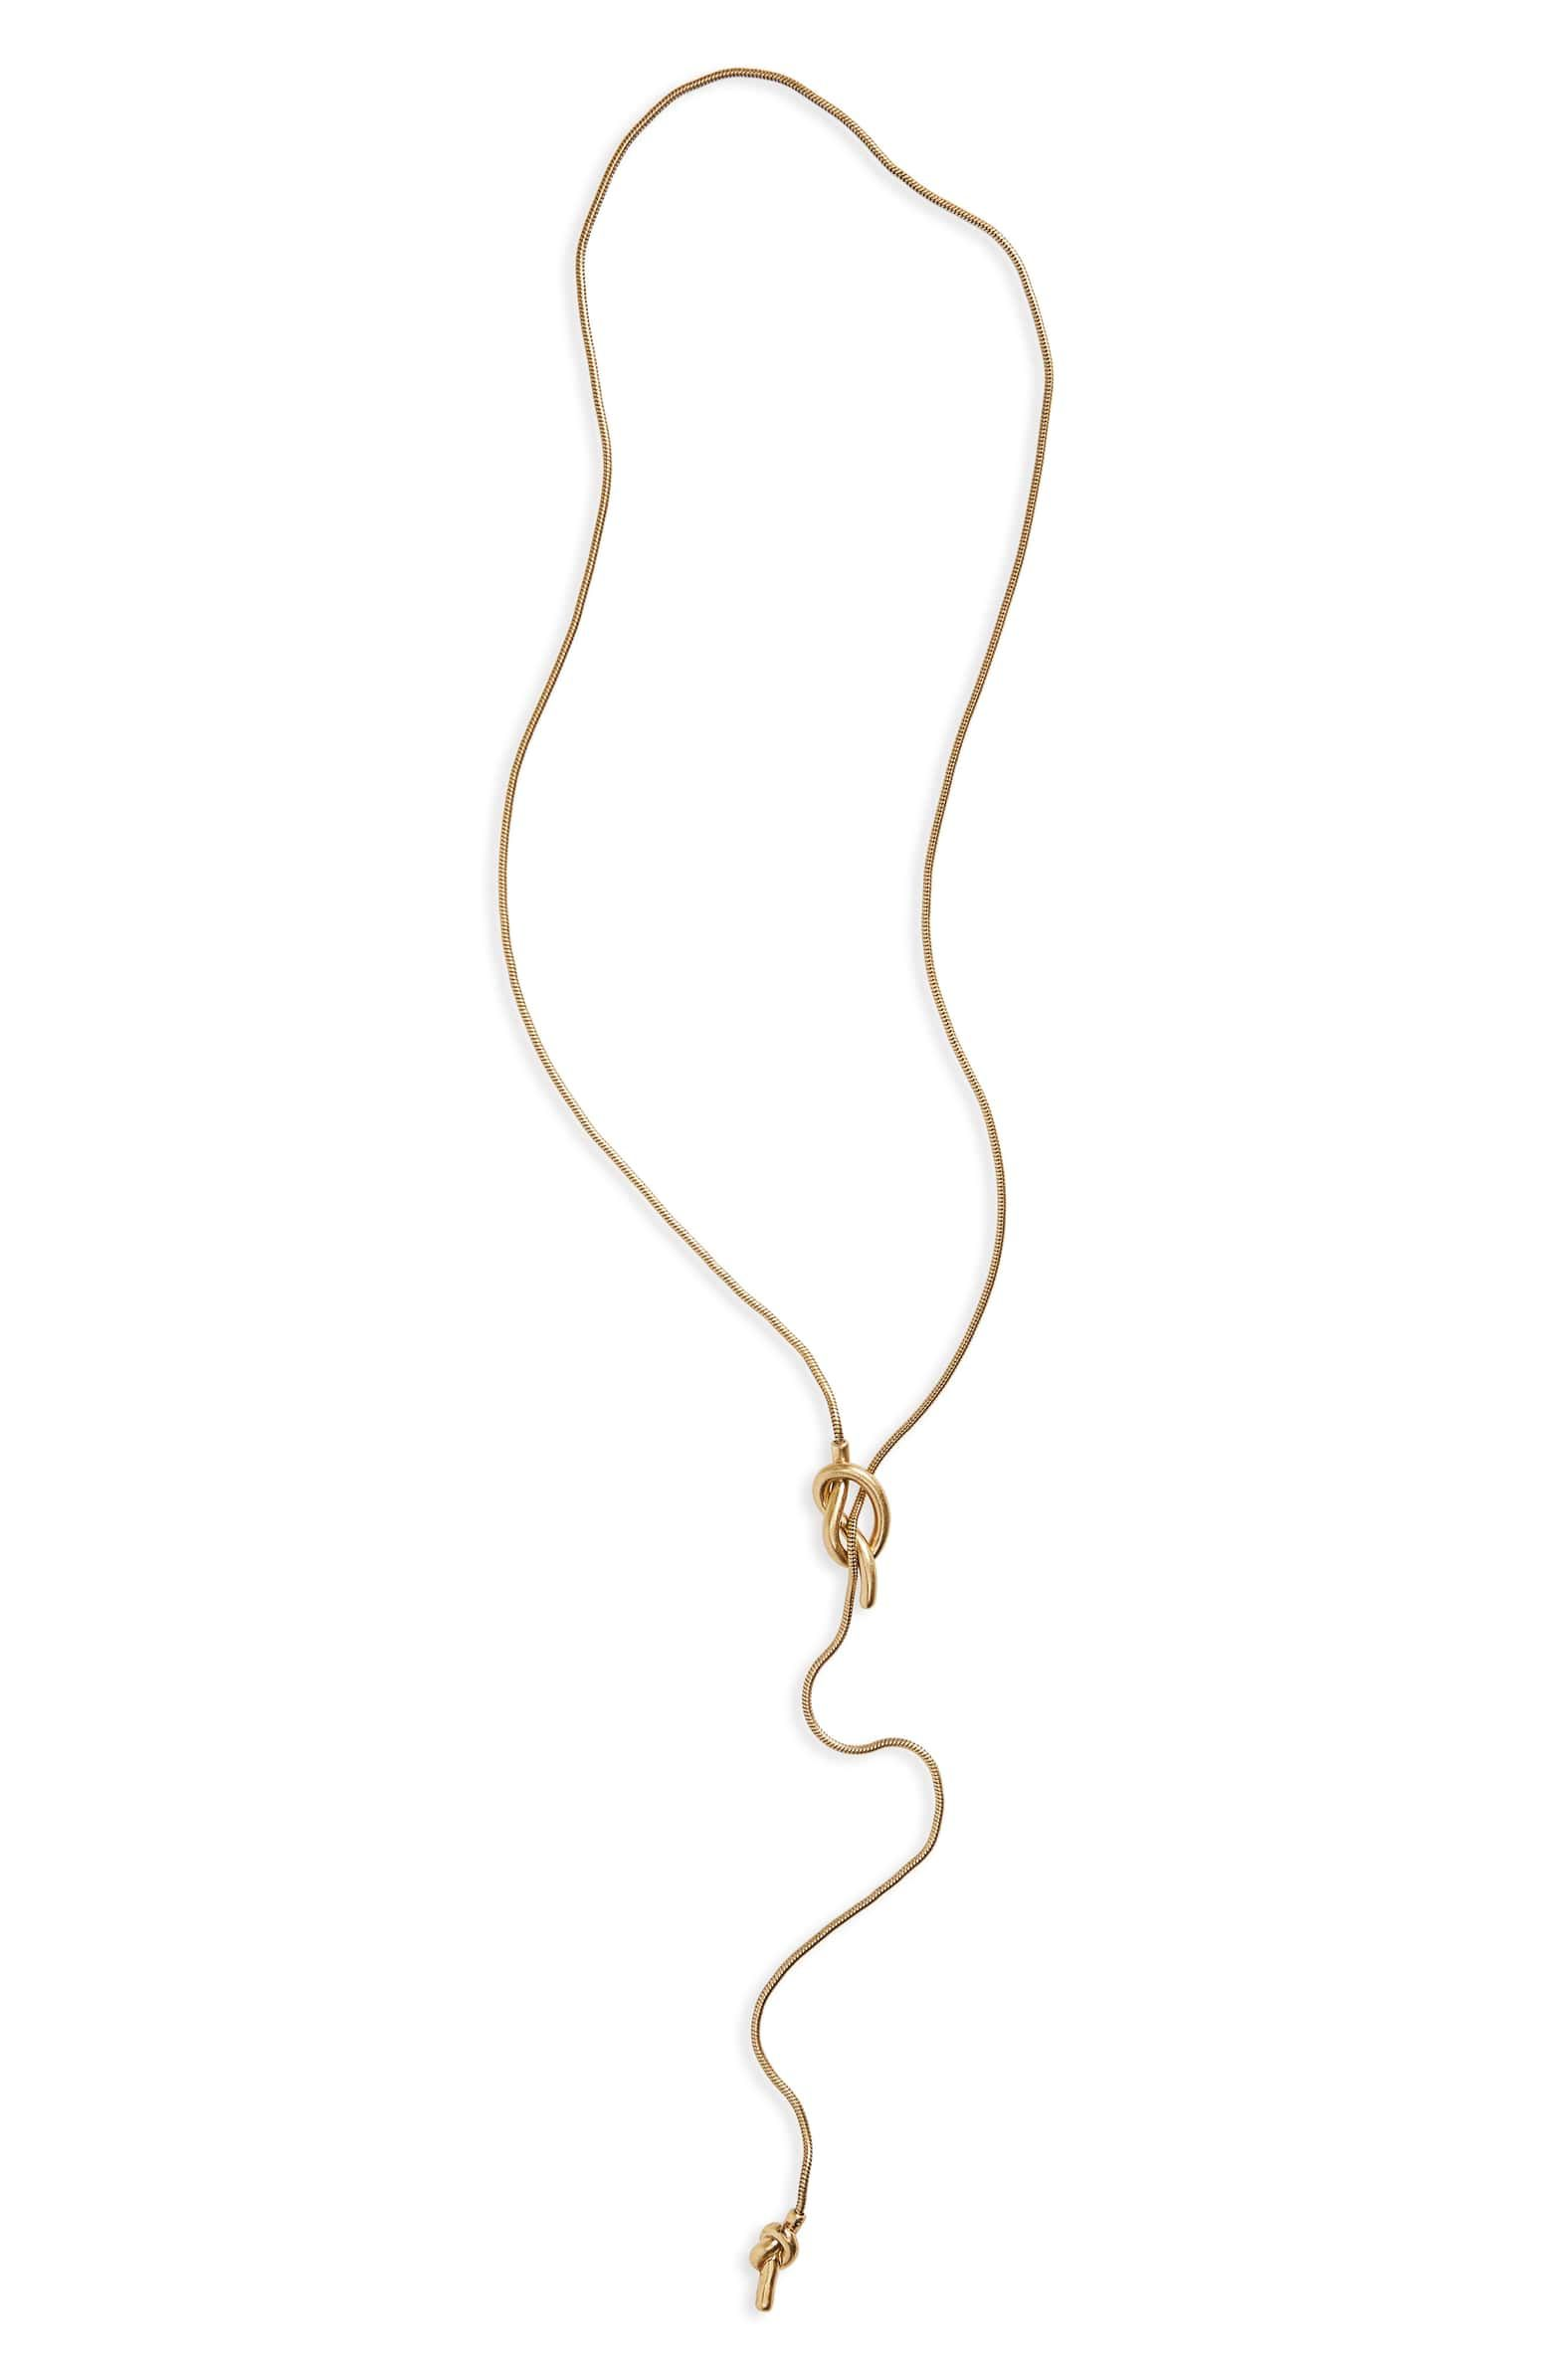 ab98e07d1d3b6 Knotshine' Necklace from Nordstrom $32   For Tanya D.   Jewelry ...